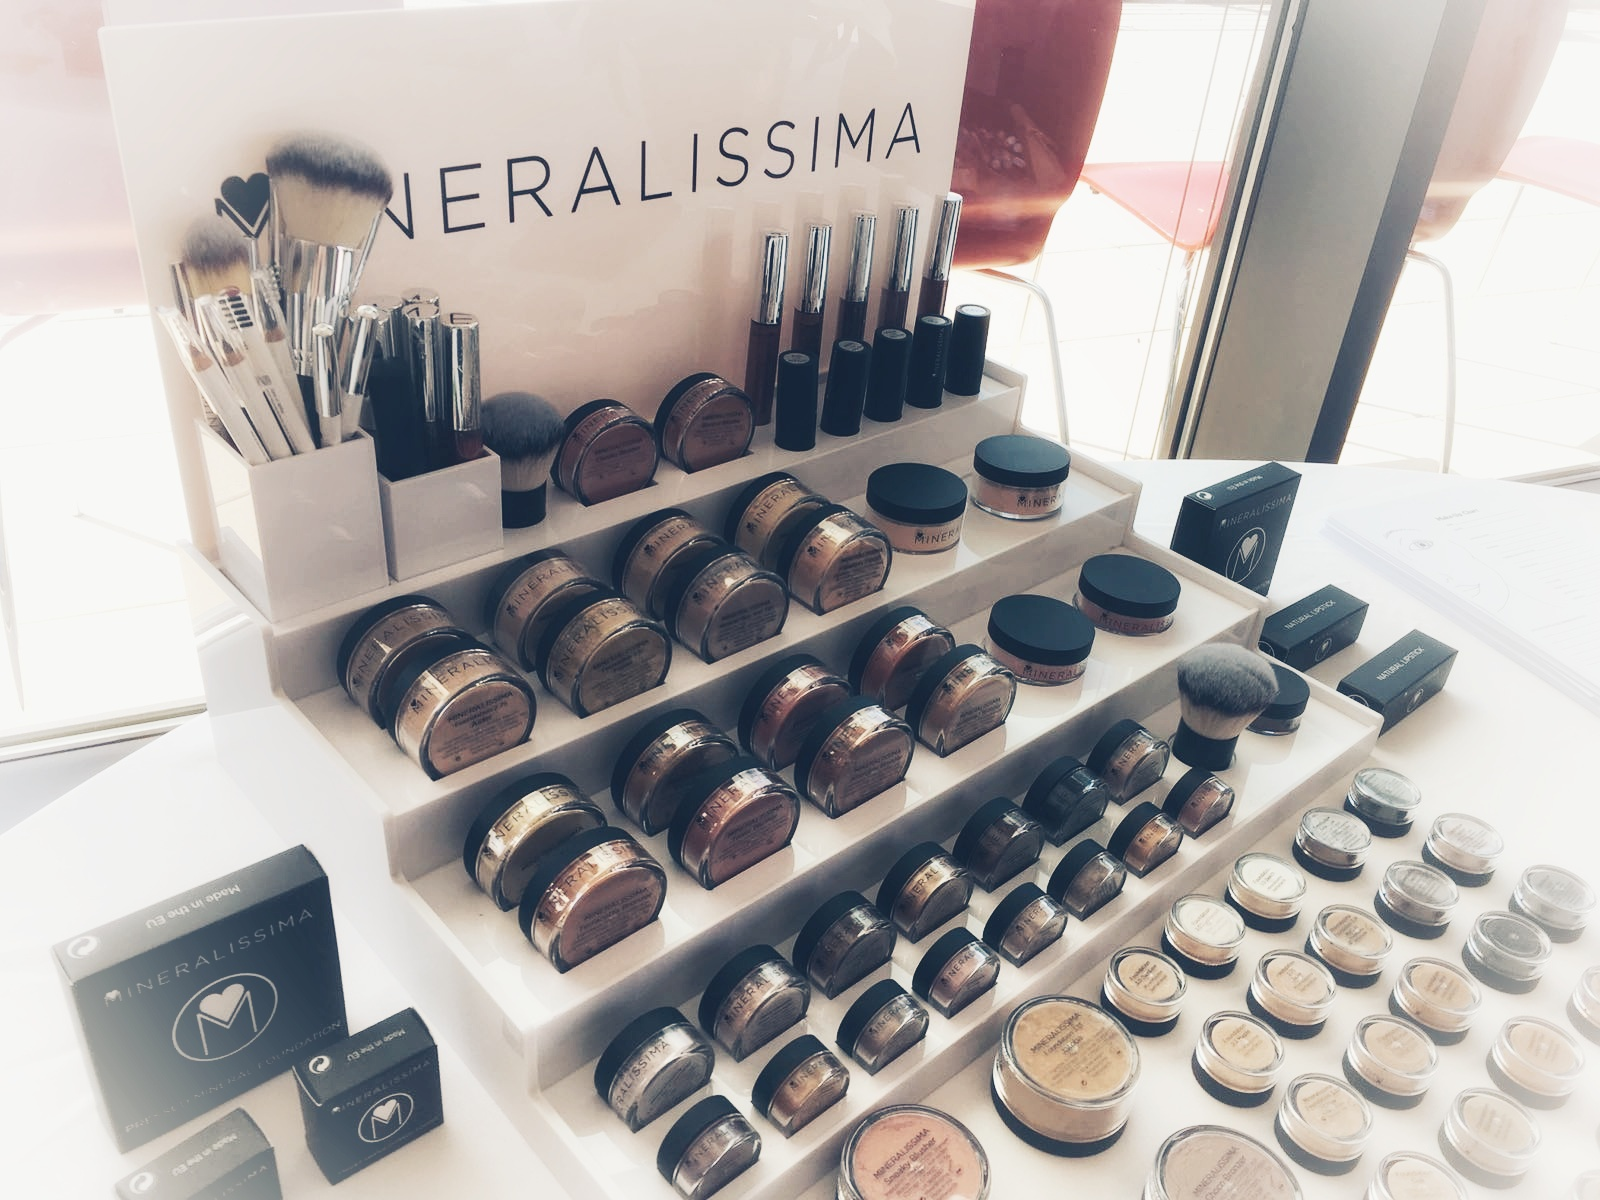 Atelier make-up Mineralissima ©jessiesgeneve